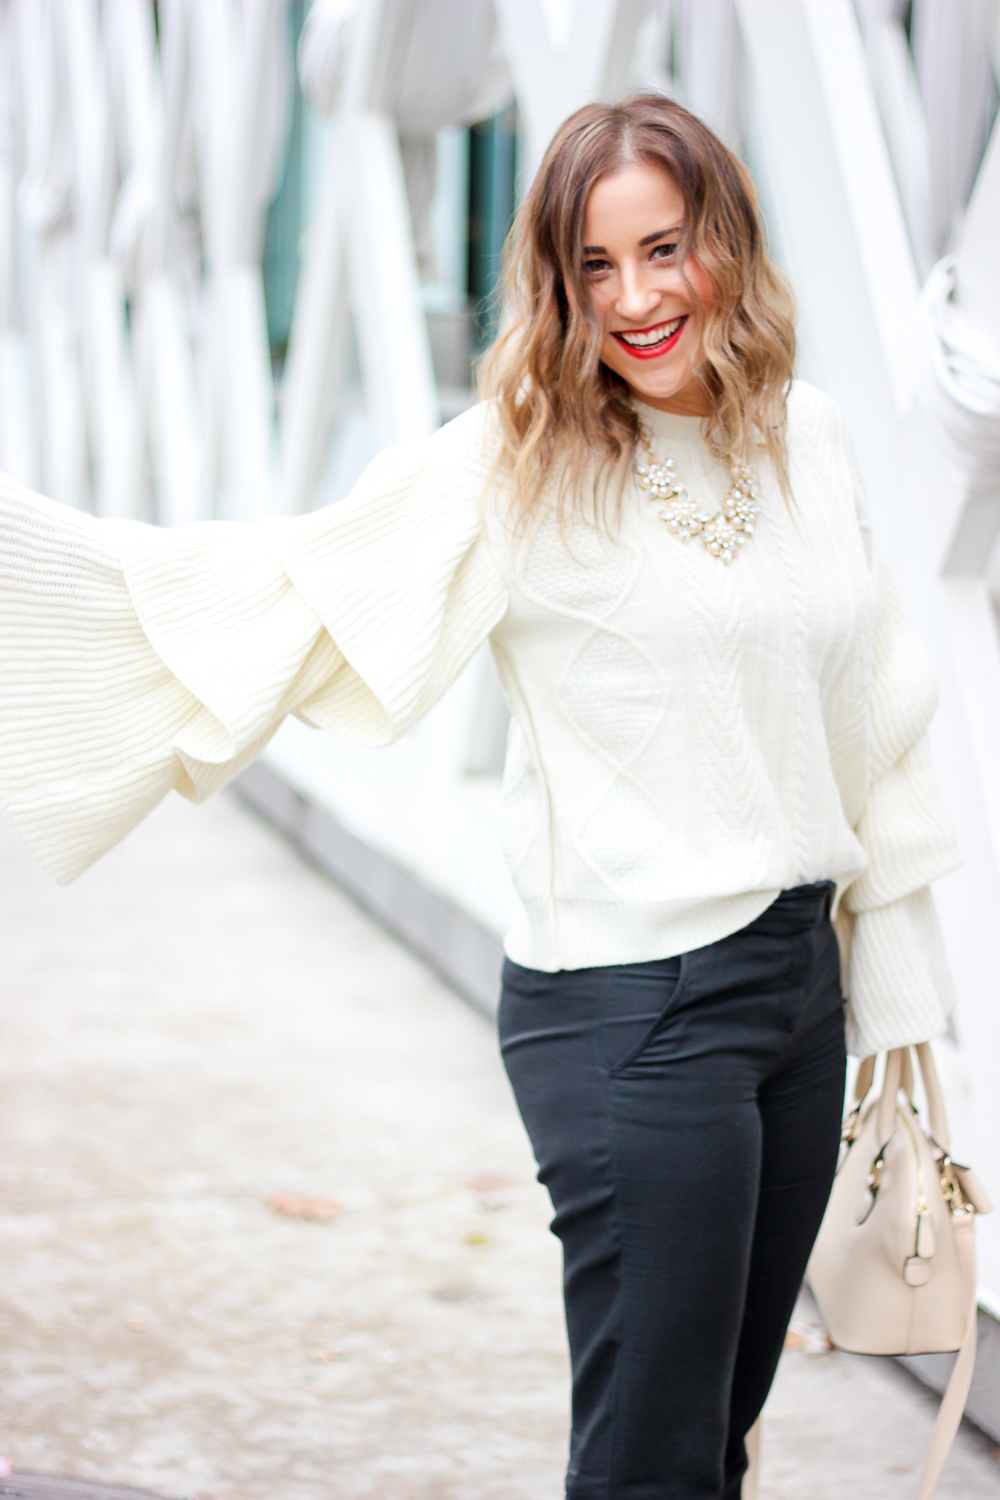 Toronto fashion blogger wearing a Chicwish winter cable knit sweater with tiered flare sleeves as outfit inspiration for cold weather